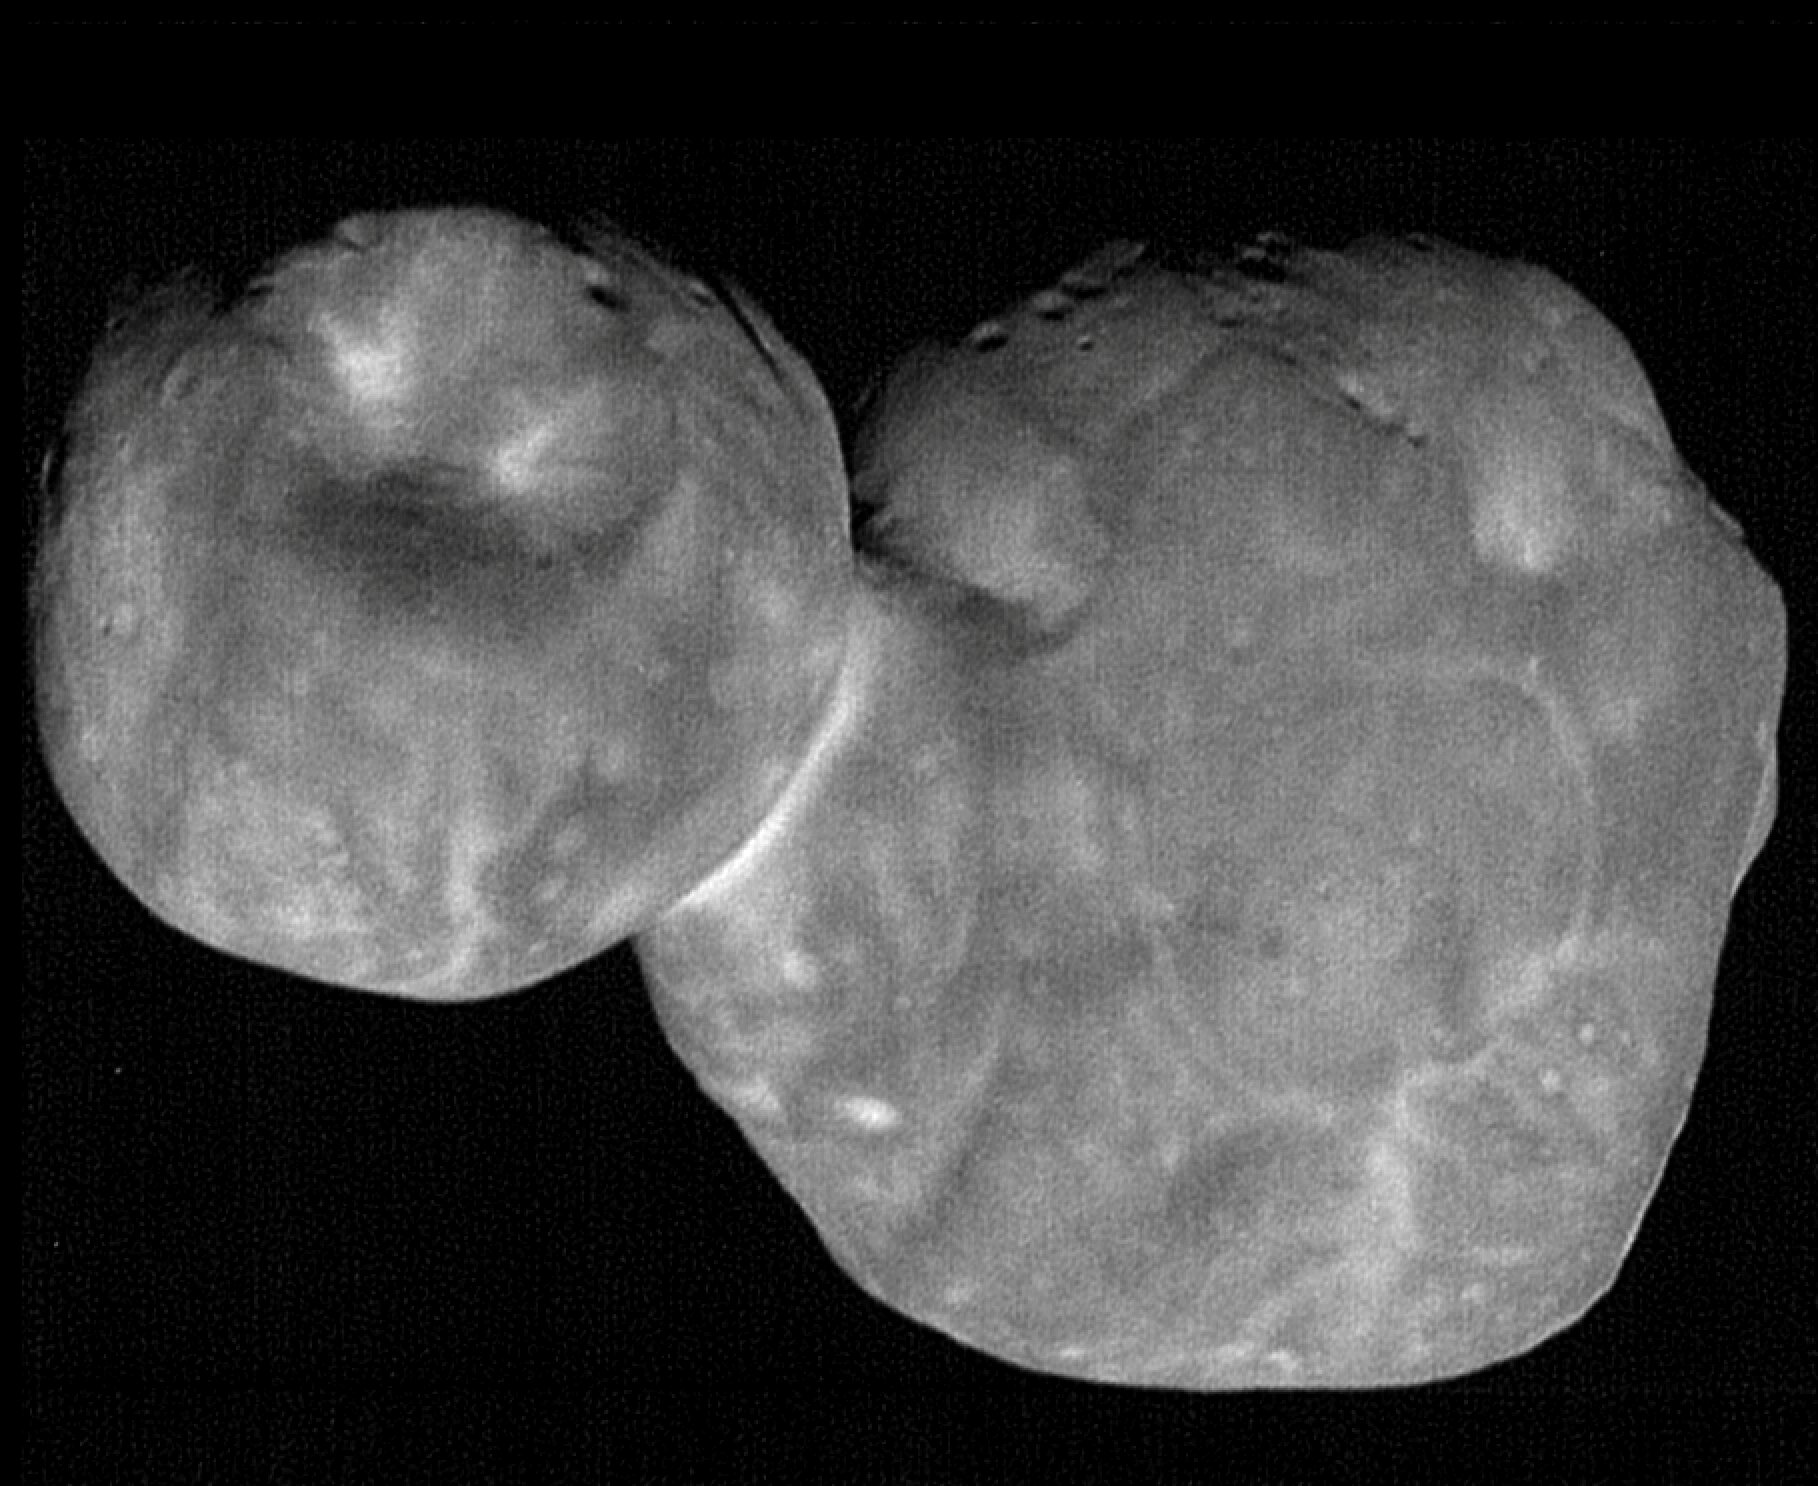 New Horizons spacecraft returns its sharpest views of Ultima Thule